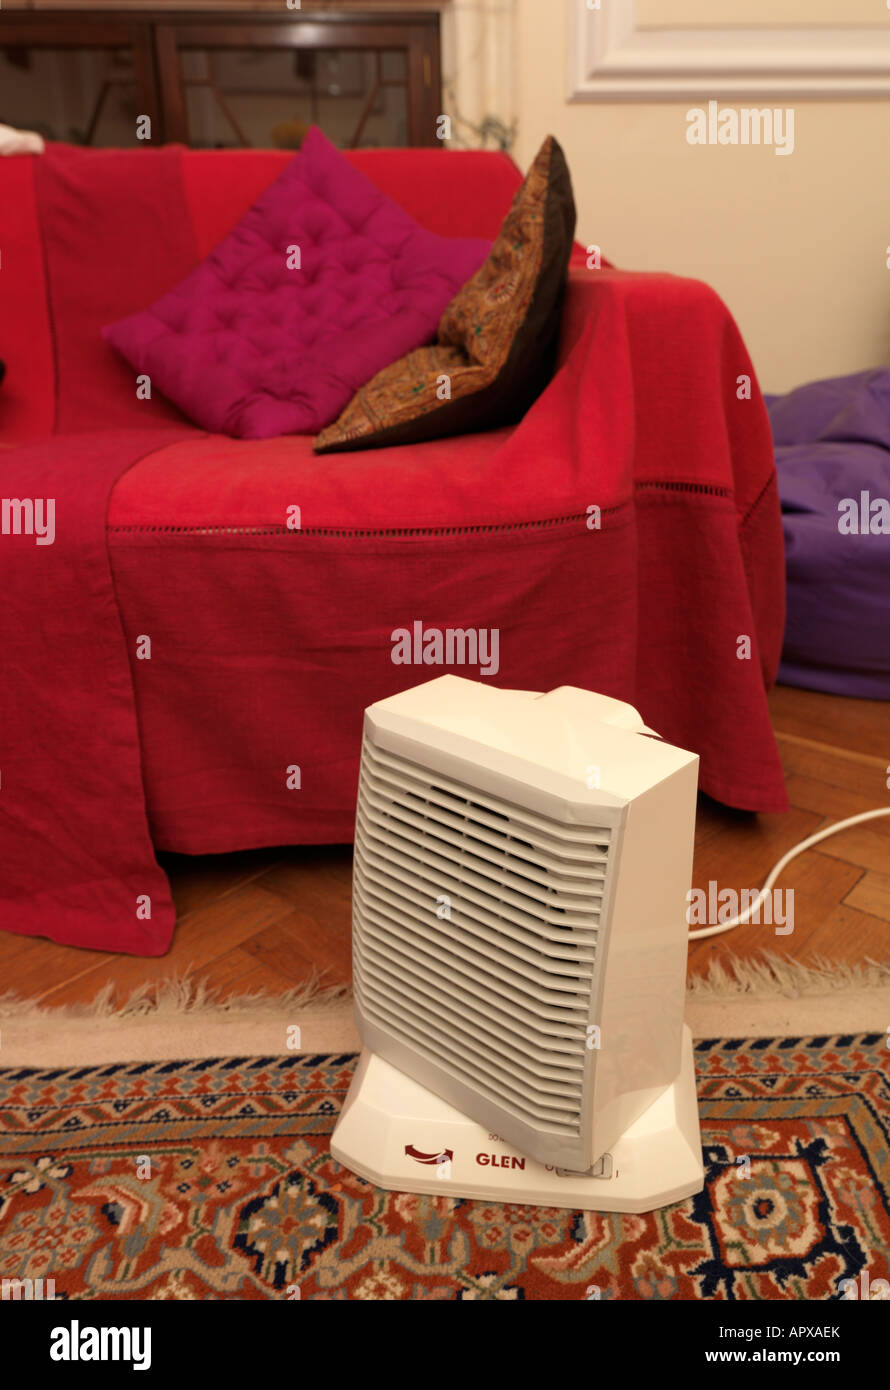 Space Heater In Living Room